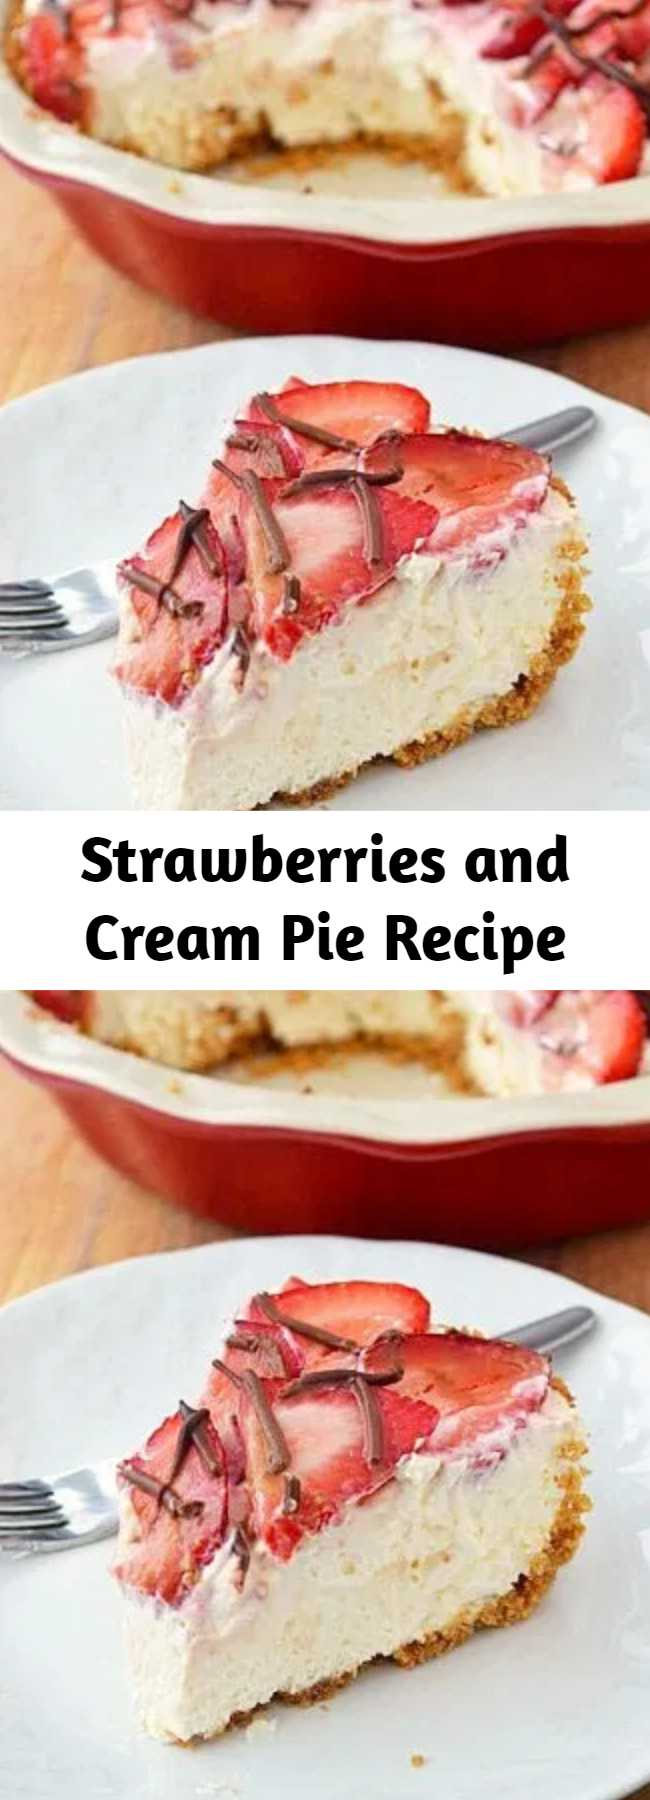 Strawberries and Cream Pie Recipe - A pie that's so rich, so decadent, yet somehow so light that every bite just melts in your mouth. Mmmmmm.